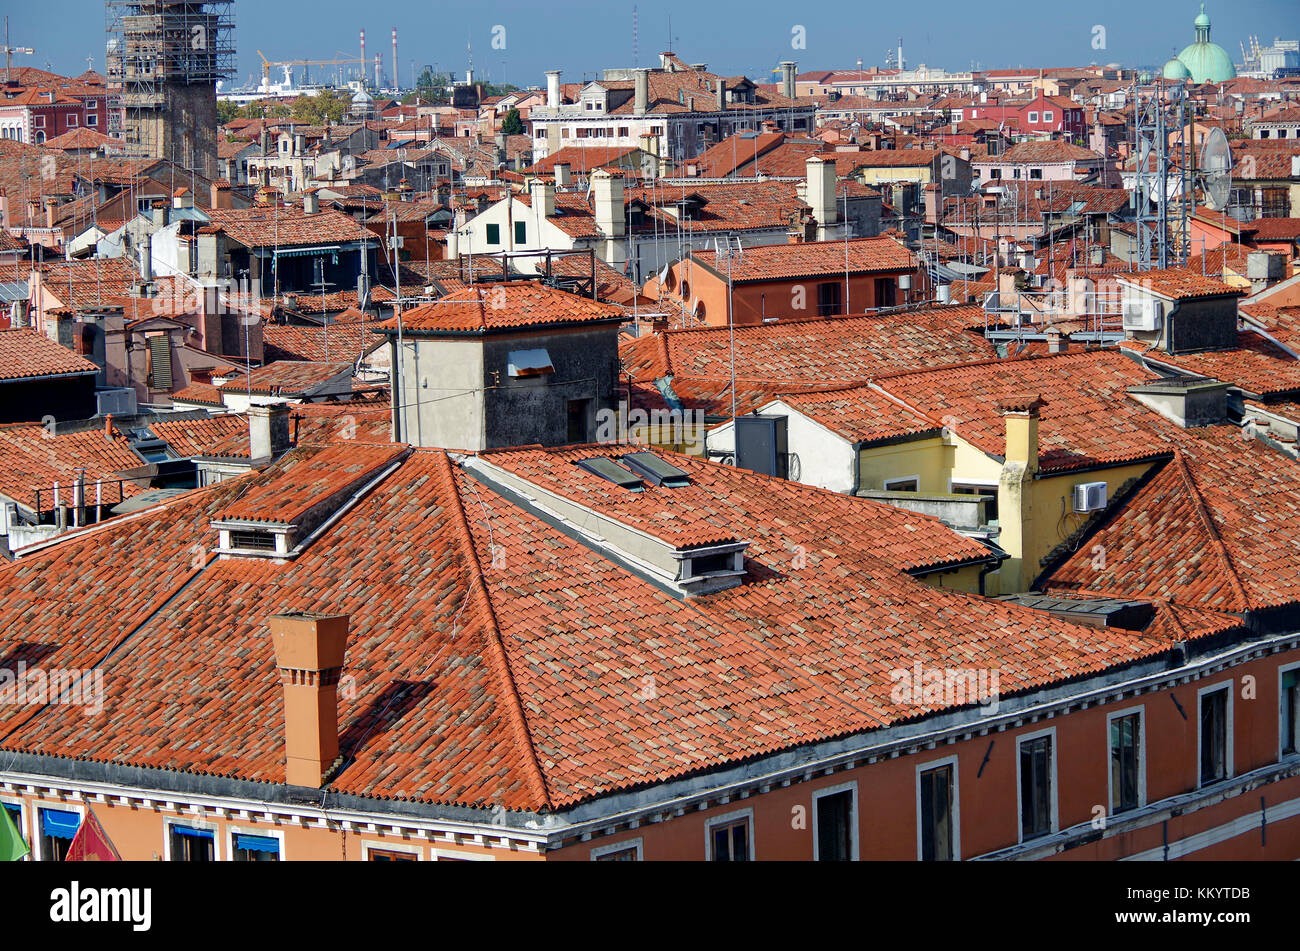 View from new roof terrace of Fontego (Fondaco) dei Tedeschi, adjacent to the Rialto bridge, - Stock Image